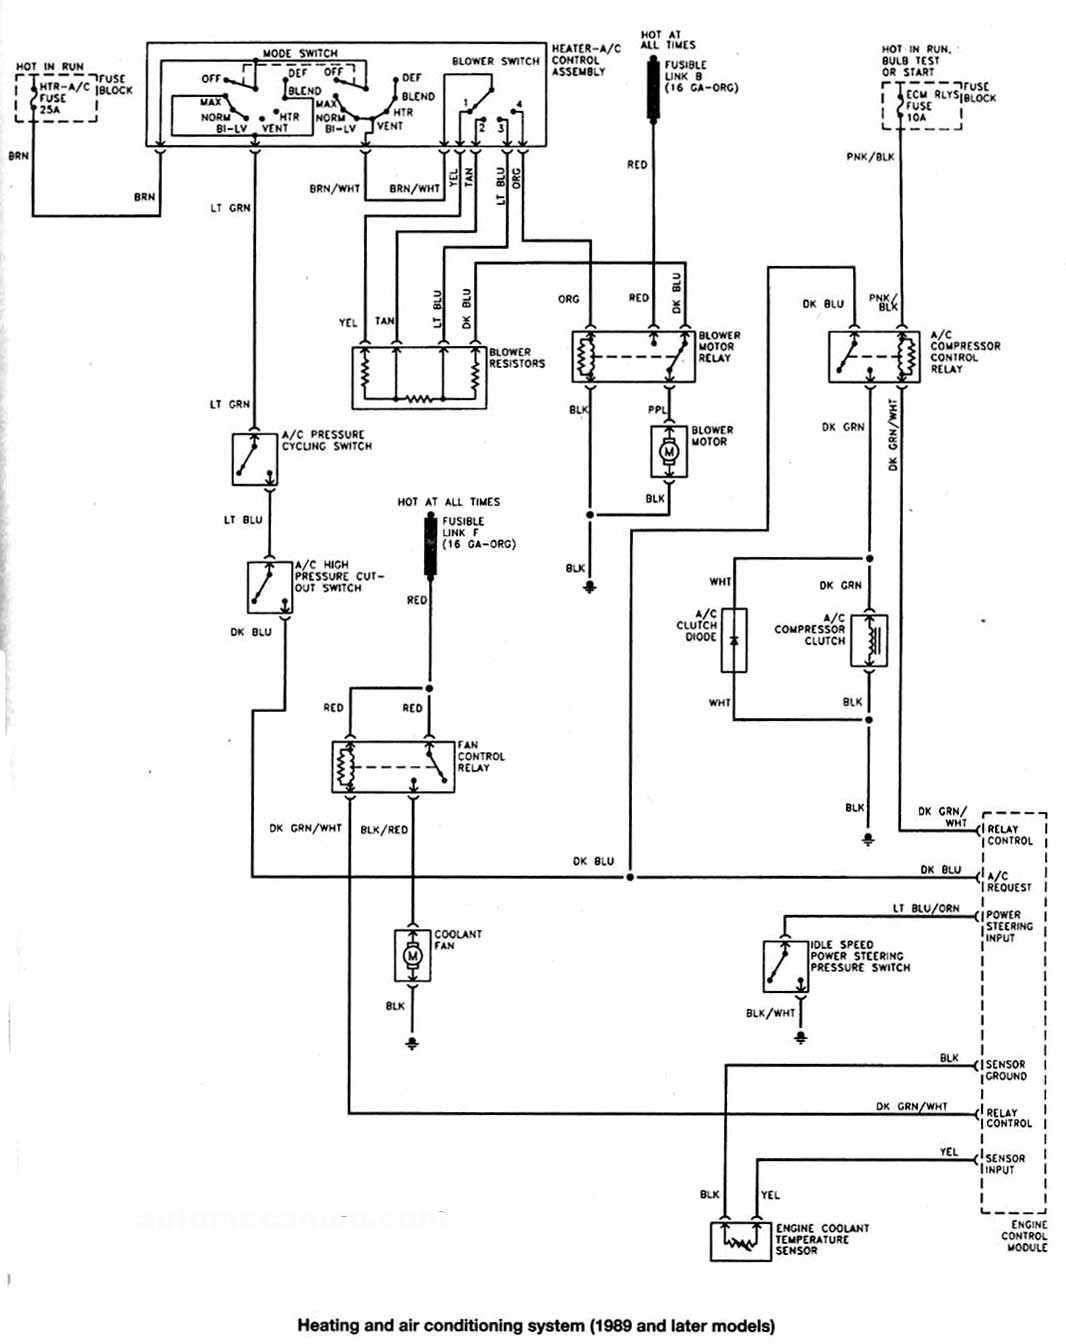 2003 chrysler voyager wiring diagram on 1997 chrysler sebring brake diagram